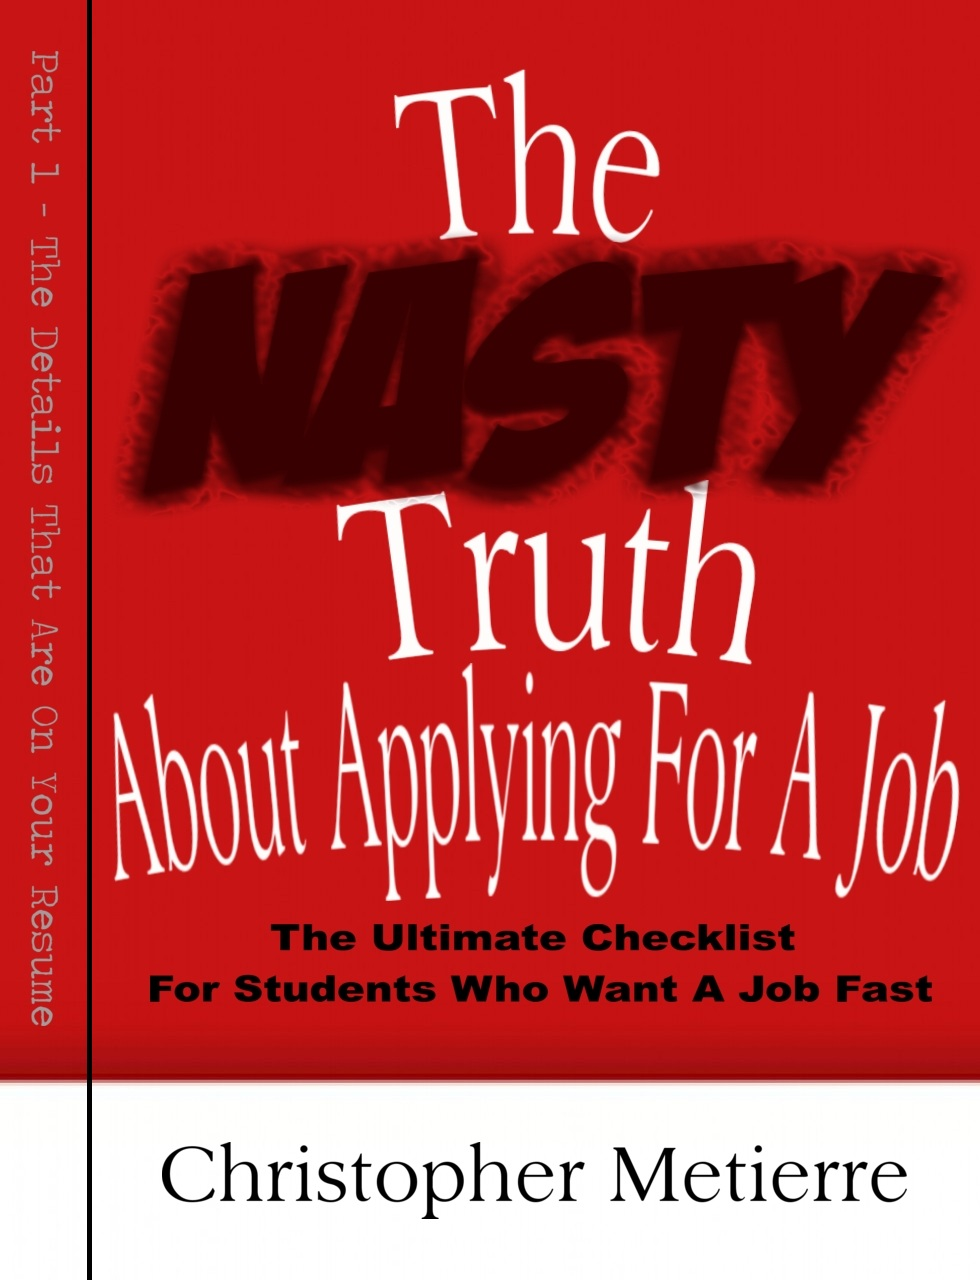 The Nasty Truth About Applying For A Job By: Christopher Metierre